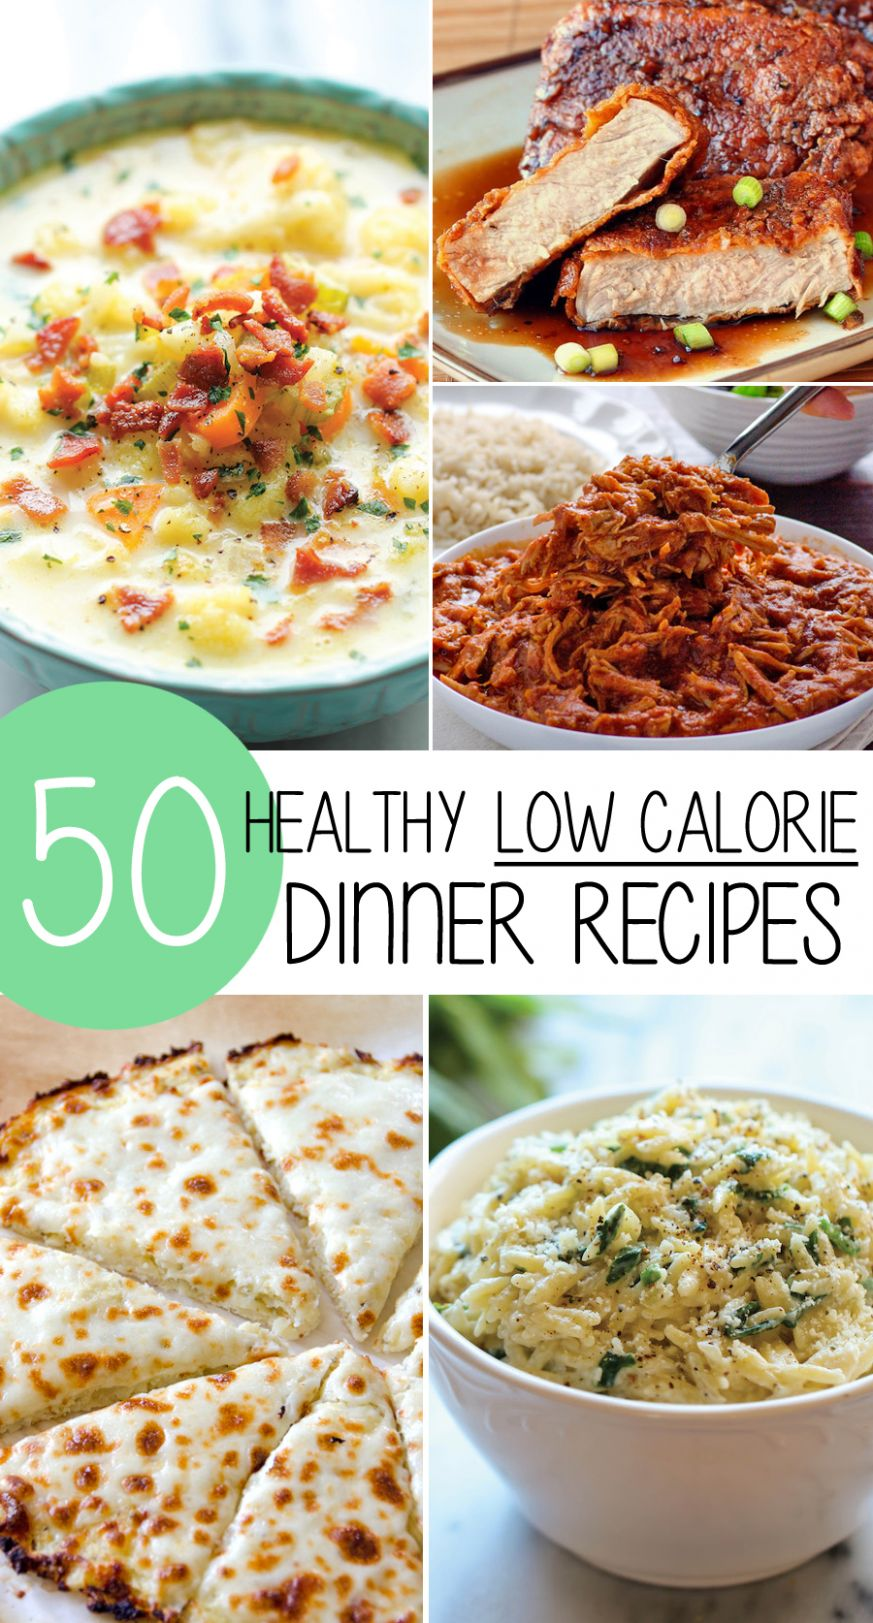 11 Healthy Low Calorie Weight Loss Dinner Recipes! – TrimmedandToned - Easy Recipes To Lose Weight